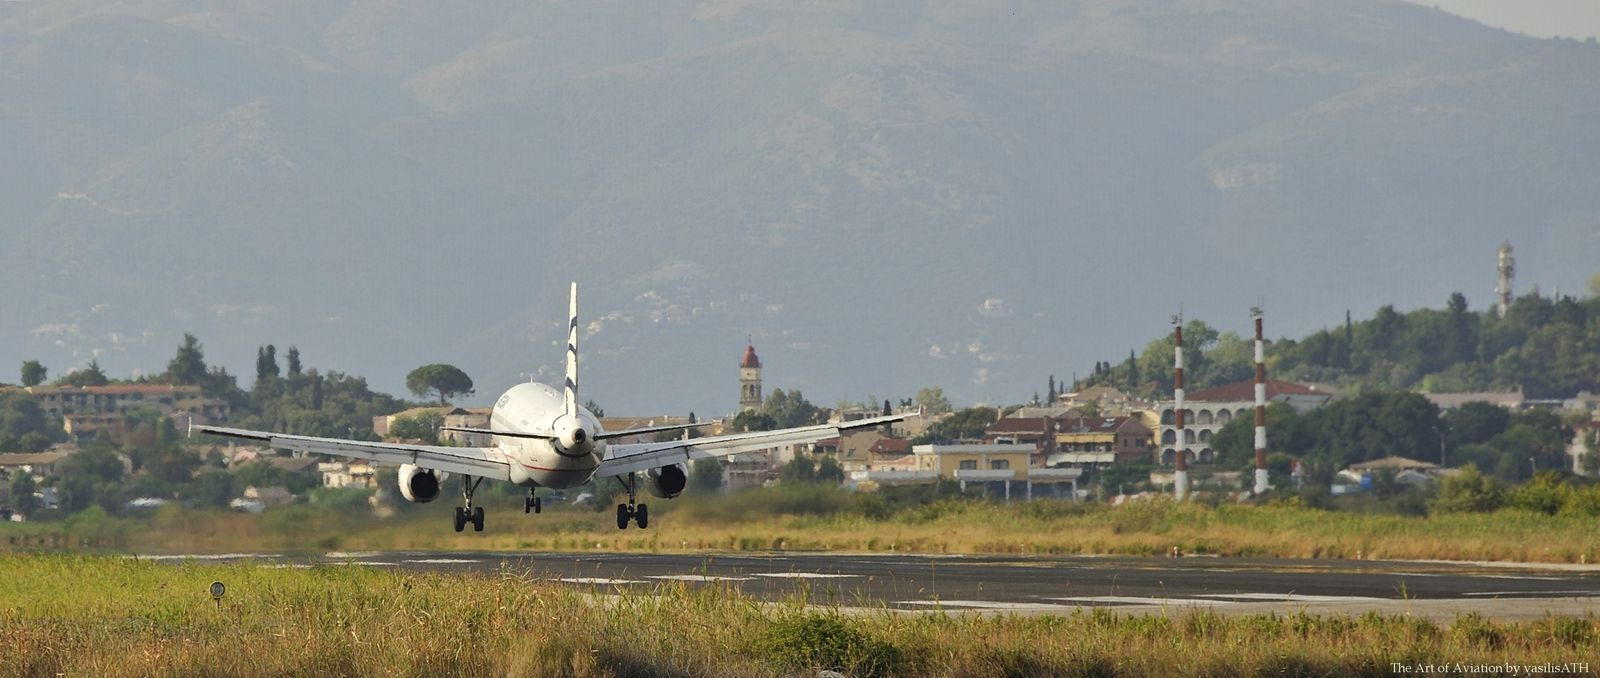 AEGEAN Late in the afternoon of a day of August in Corfu Ioannis Kapodistrias (Capodistrias) International Airport (IATA: CFU, ICAO: LGKR)